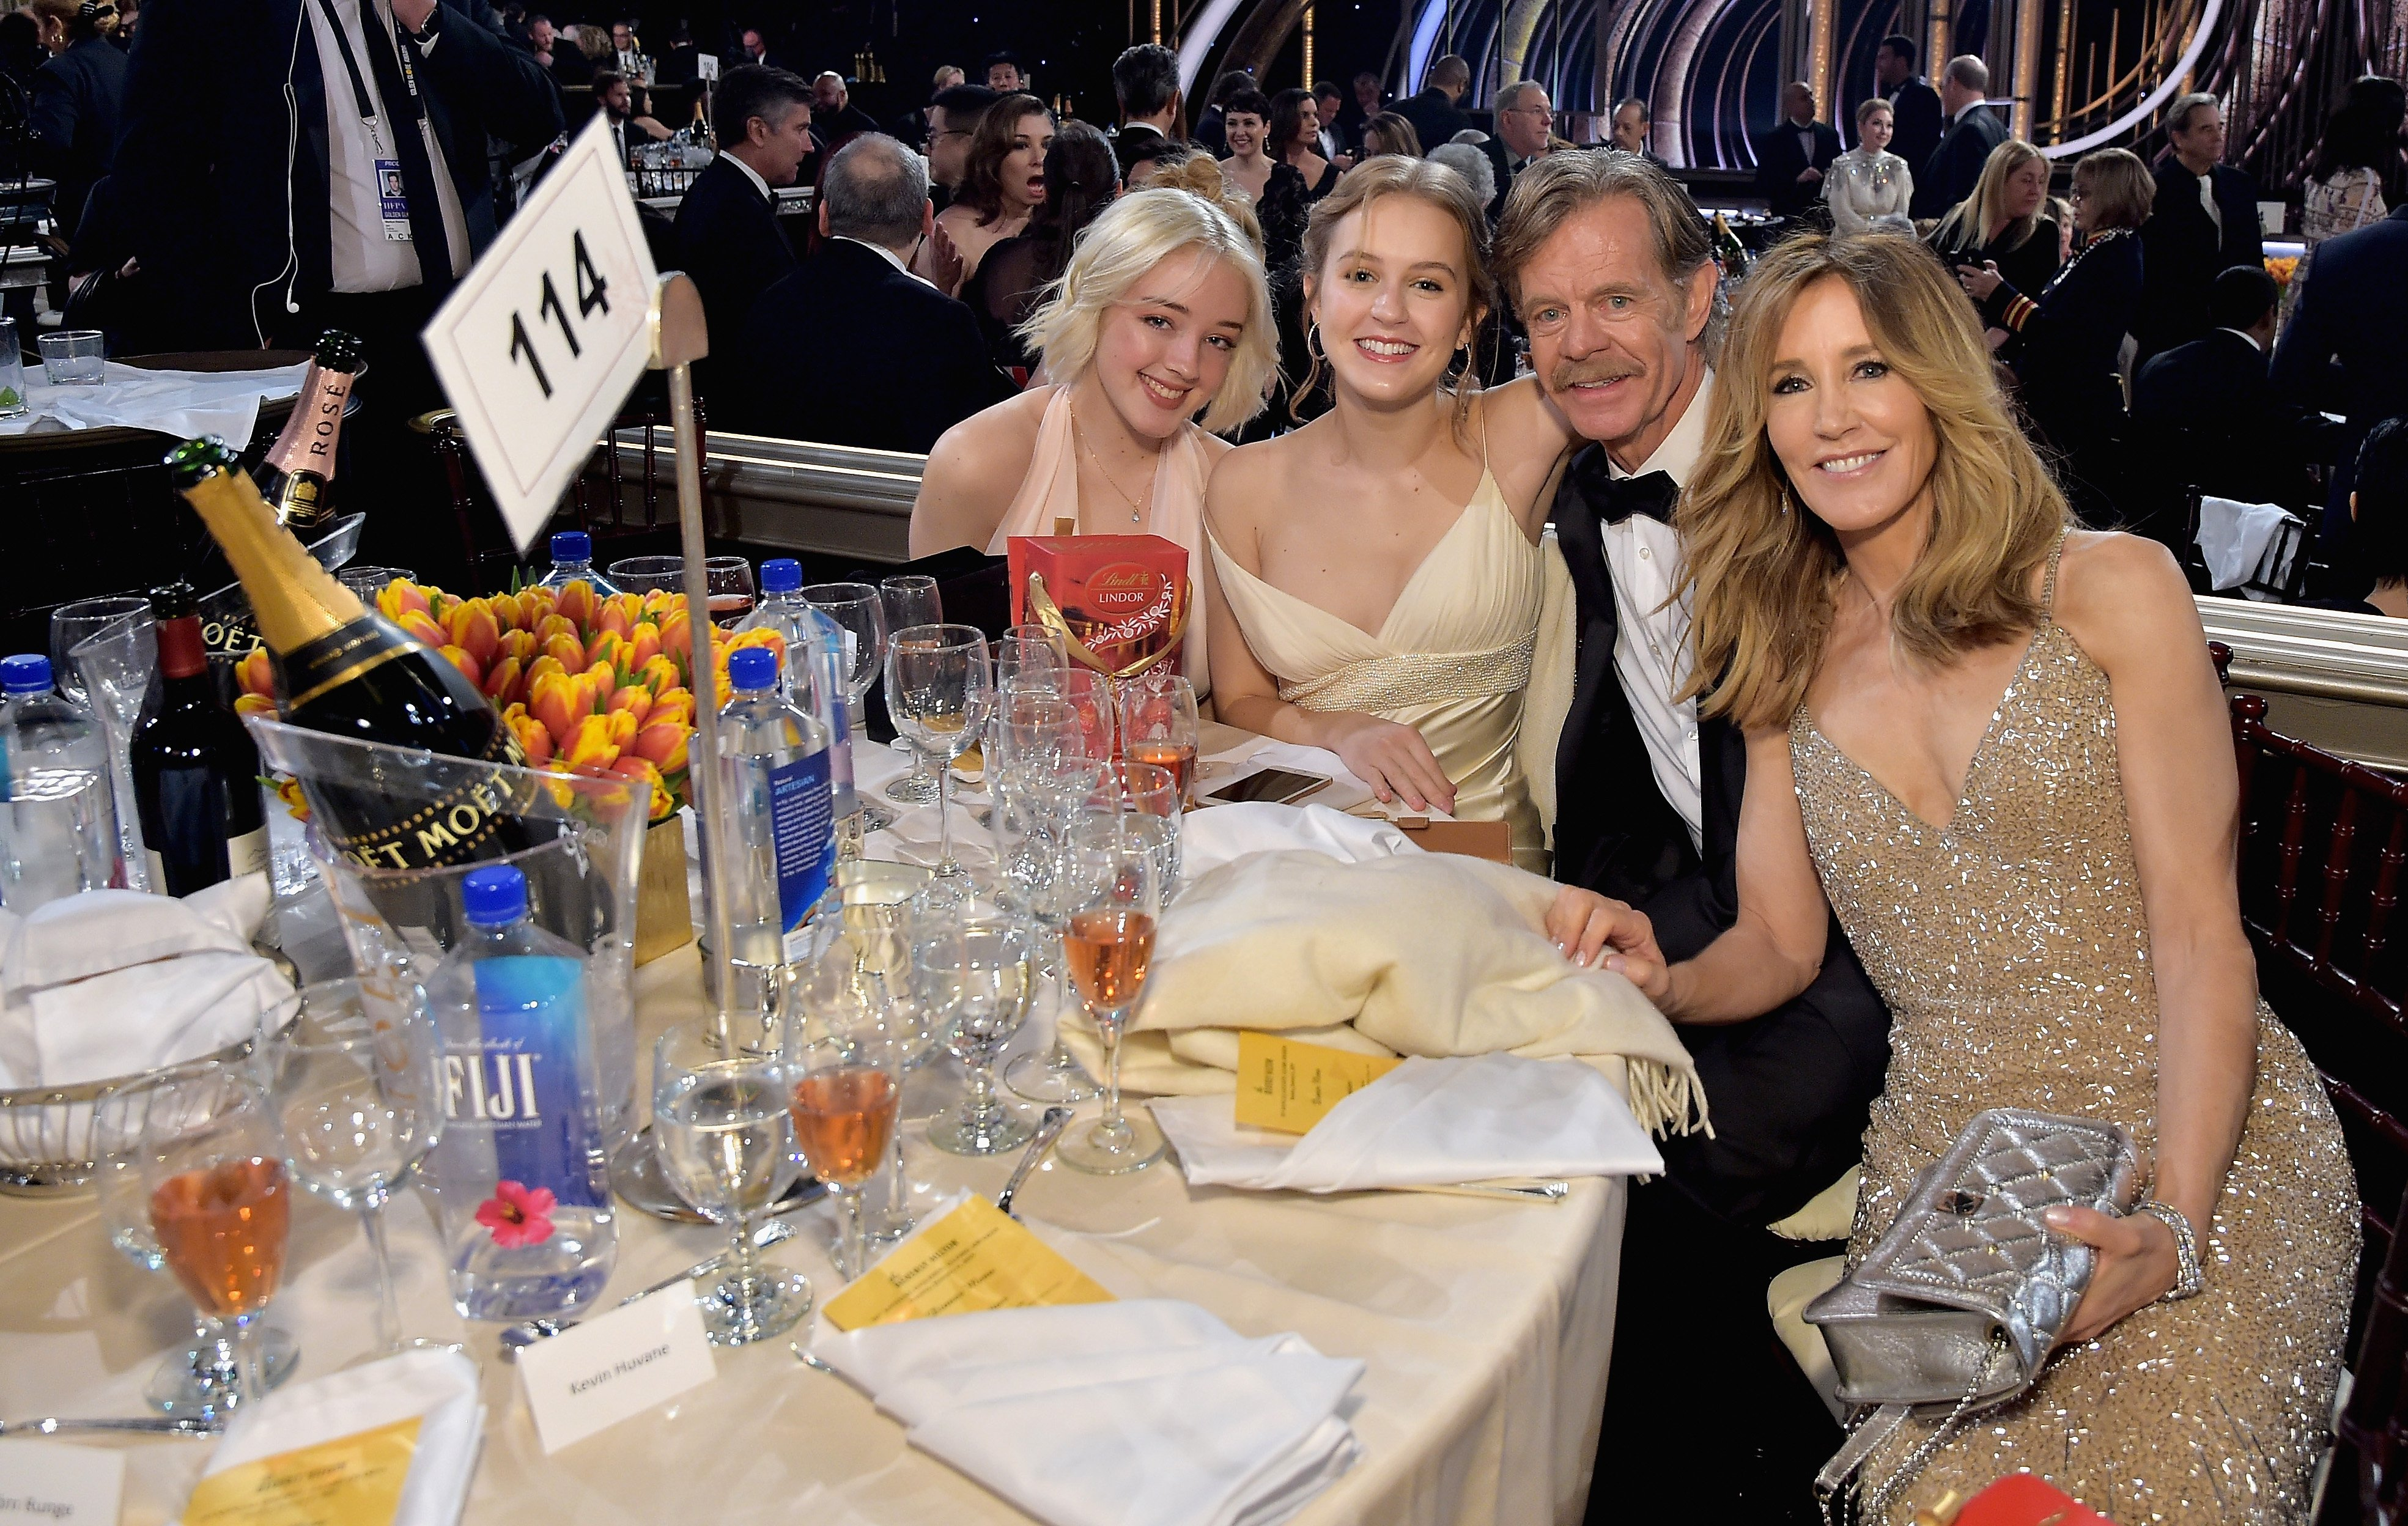 (L-R)Sophia, Georgia, William H. Macy, & Felicity Huffman at the 76th Annual Golden Globe Awards on Jan. 6, 2019 in California   Photo: Getty Images